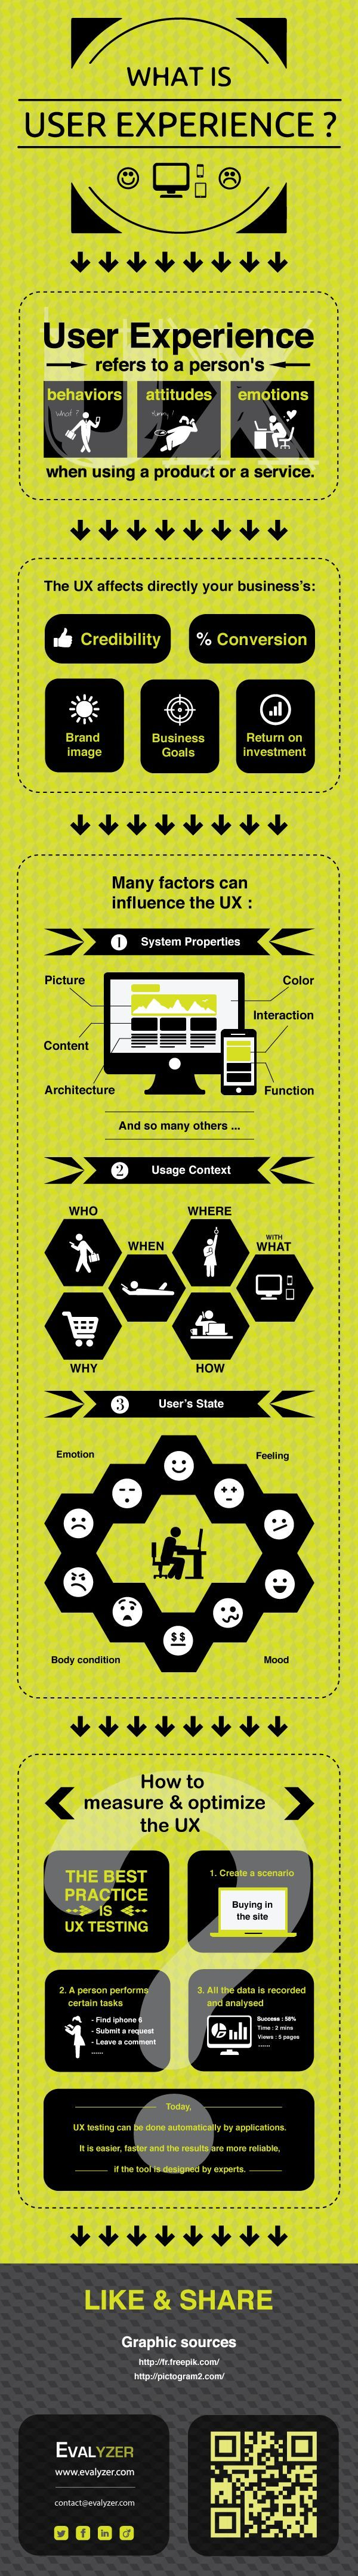 What is User Experience (UX) ?. If you like UX, design, or design thinking, check out theuxblog.com